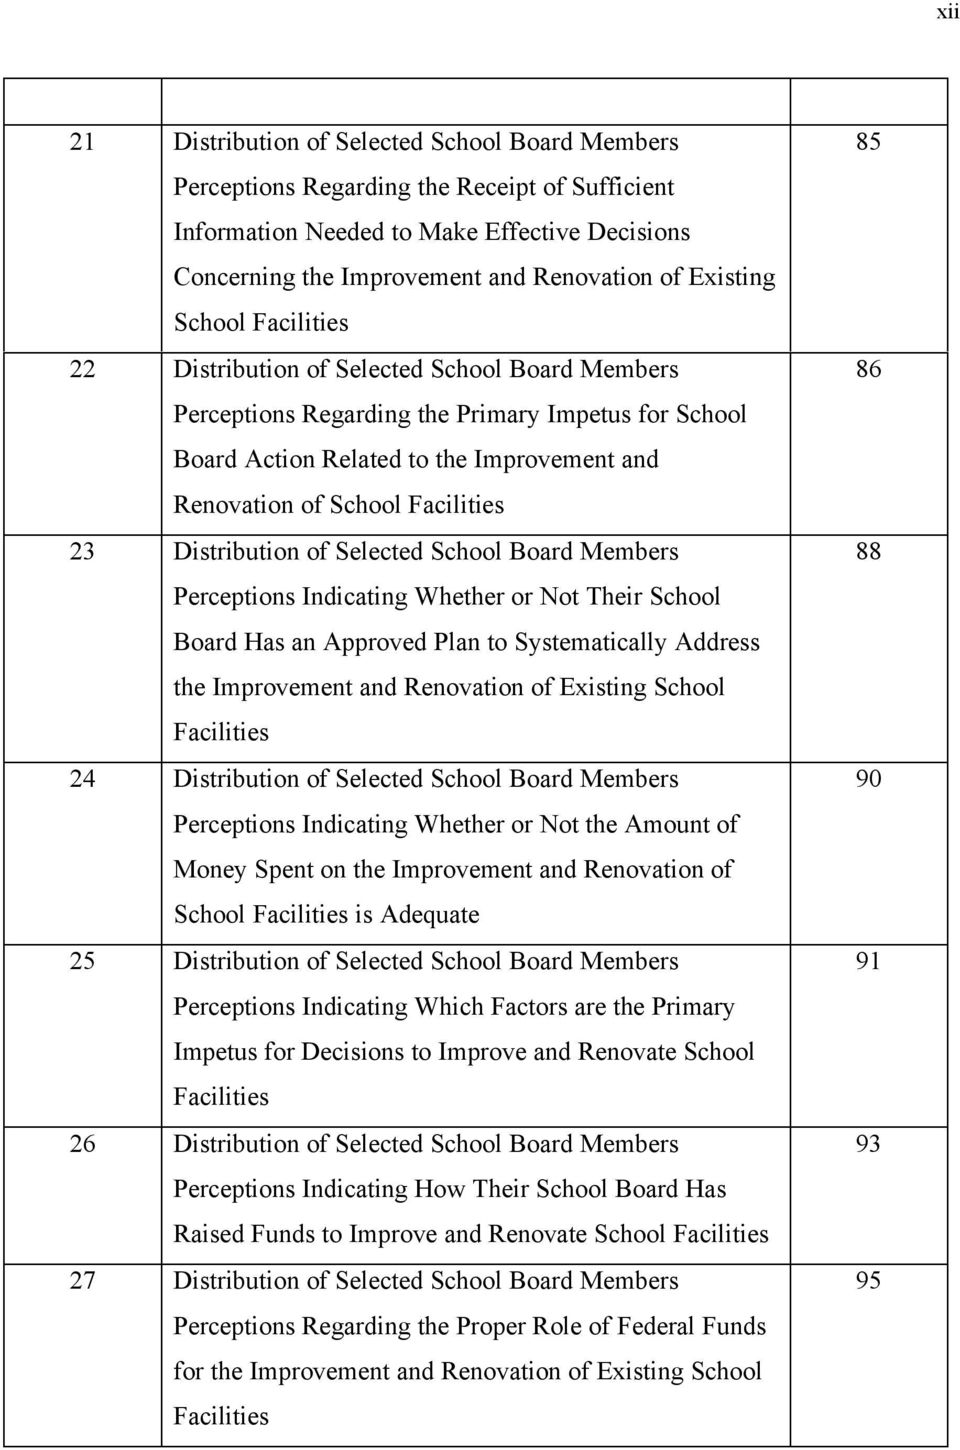 Facilities 23 Distribution of Selected School Board Members Perceptions Indicating Whether or Not Their School Board Has an Approved Plan to Systematically Address the Improvement and Renovation of